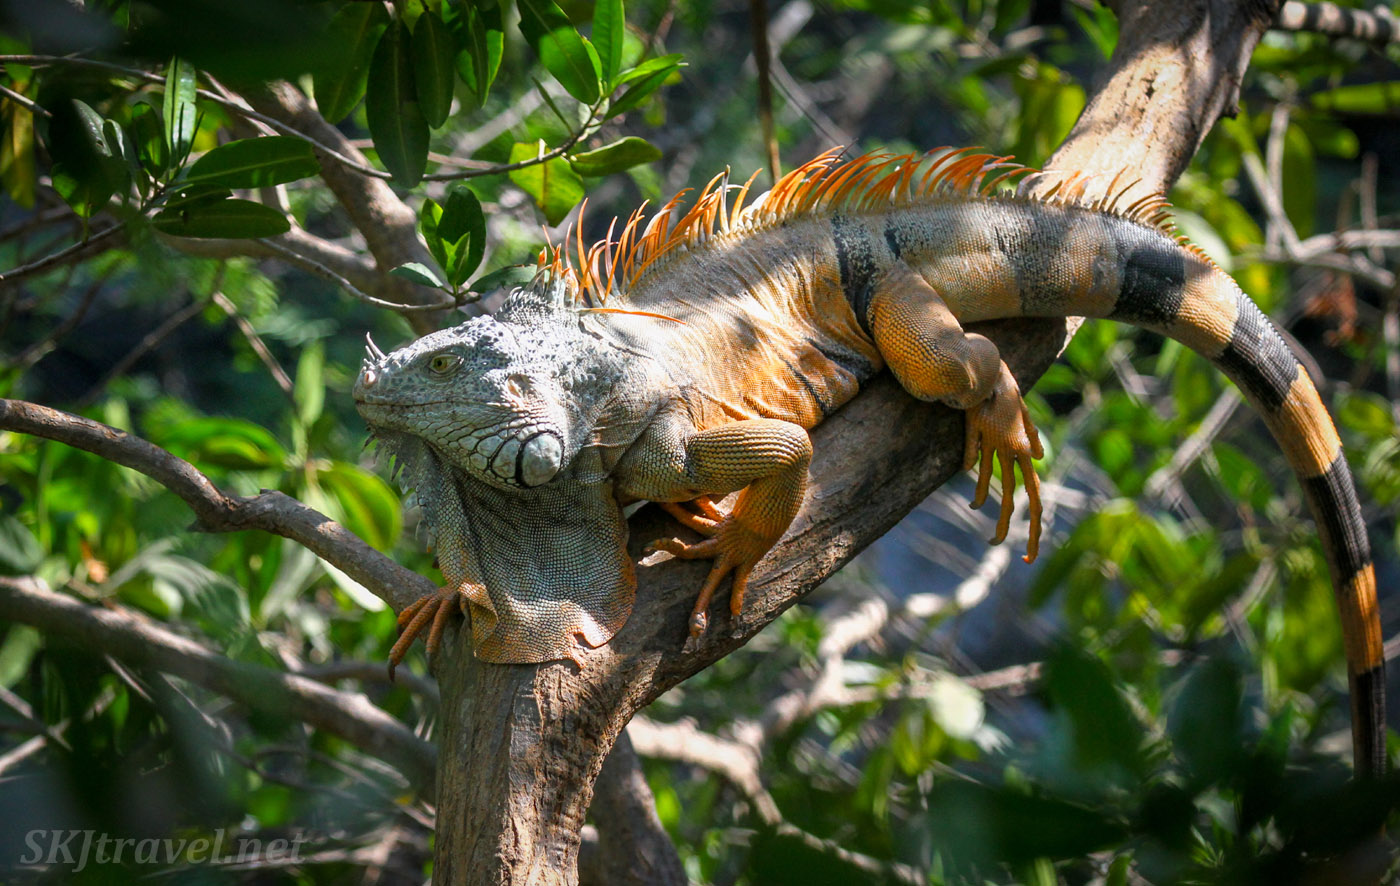 Colorful male iguana lounging on a tree branch. Popoyote Lagoon crocodile reserve, Playa Linda, Ixtapa, Mexico.